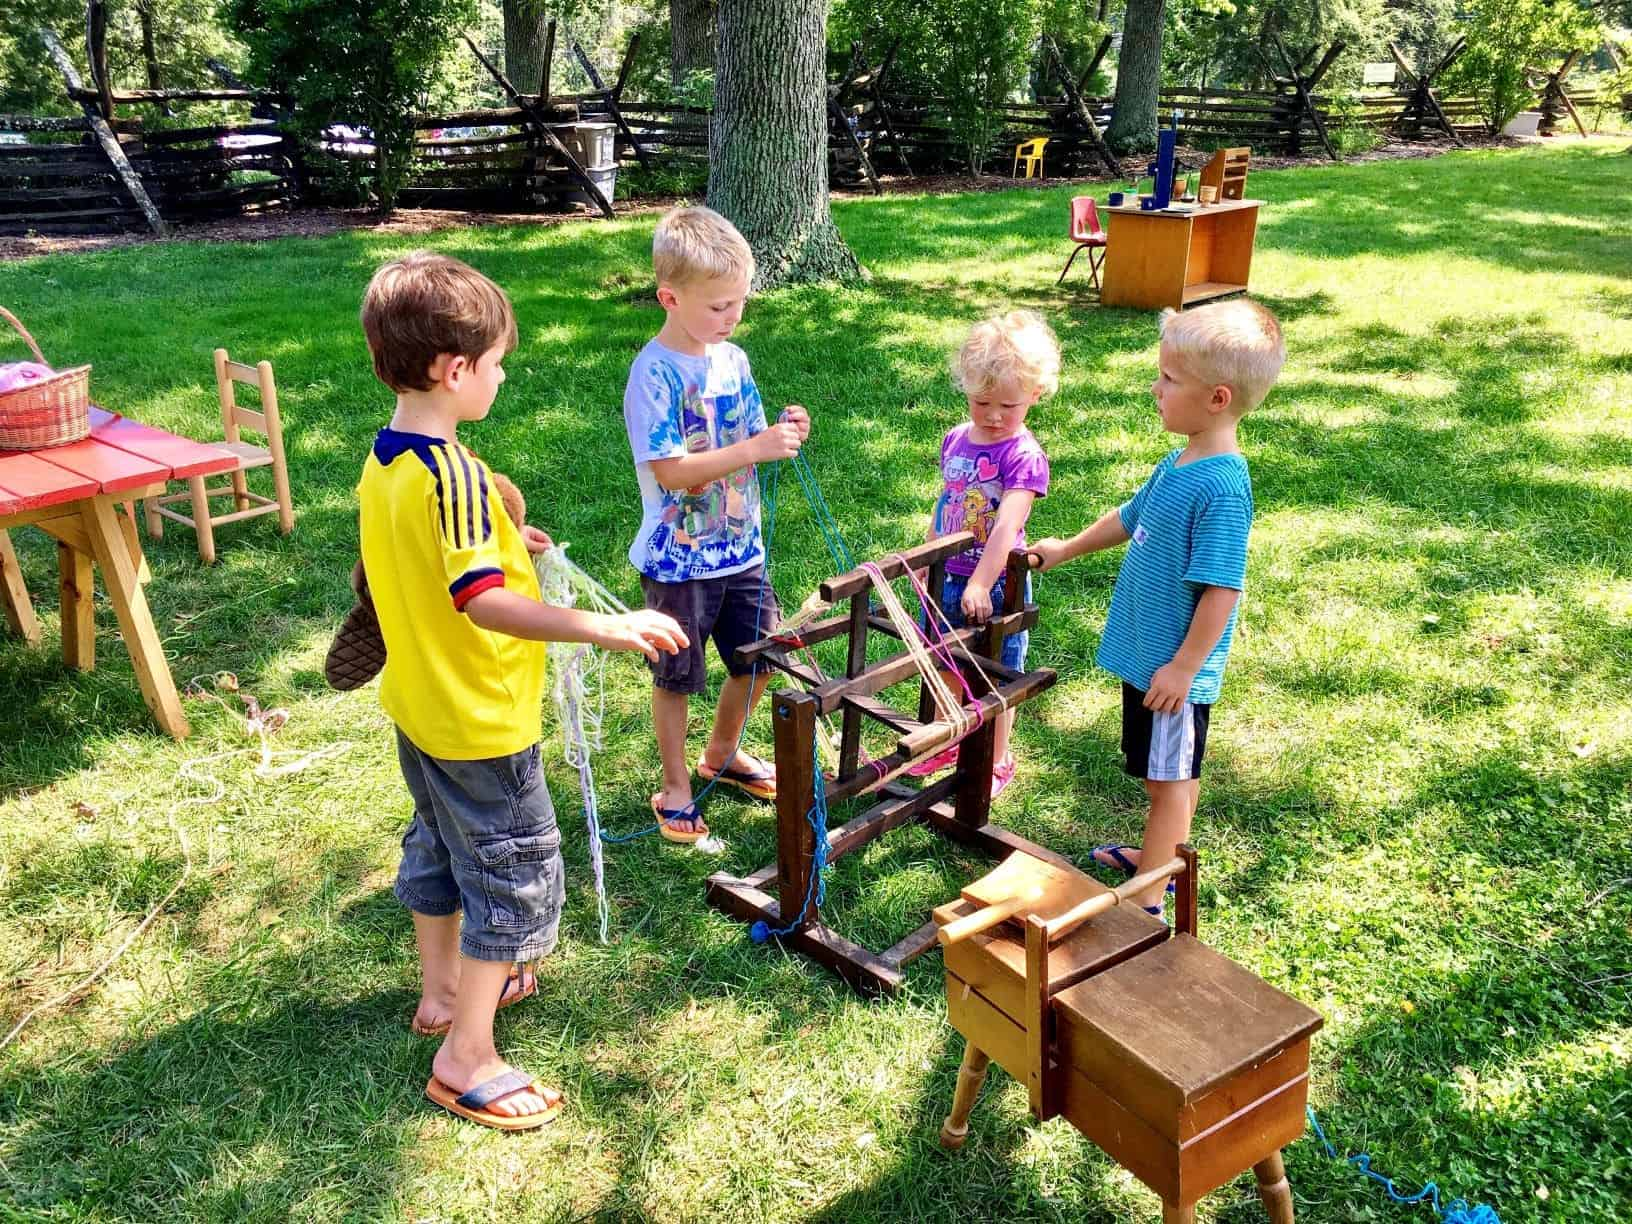 Kids playing at Hands-on-History Playground at Montpelier Mansion